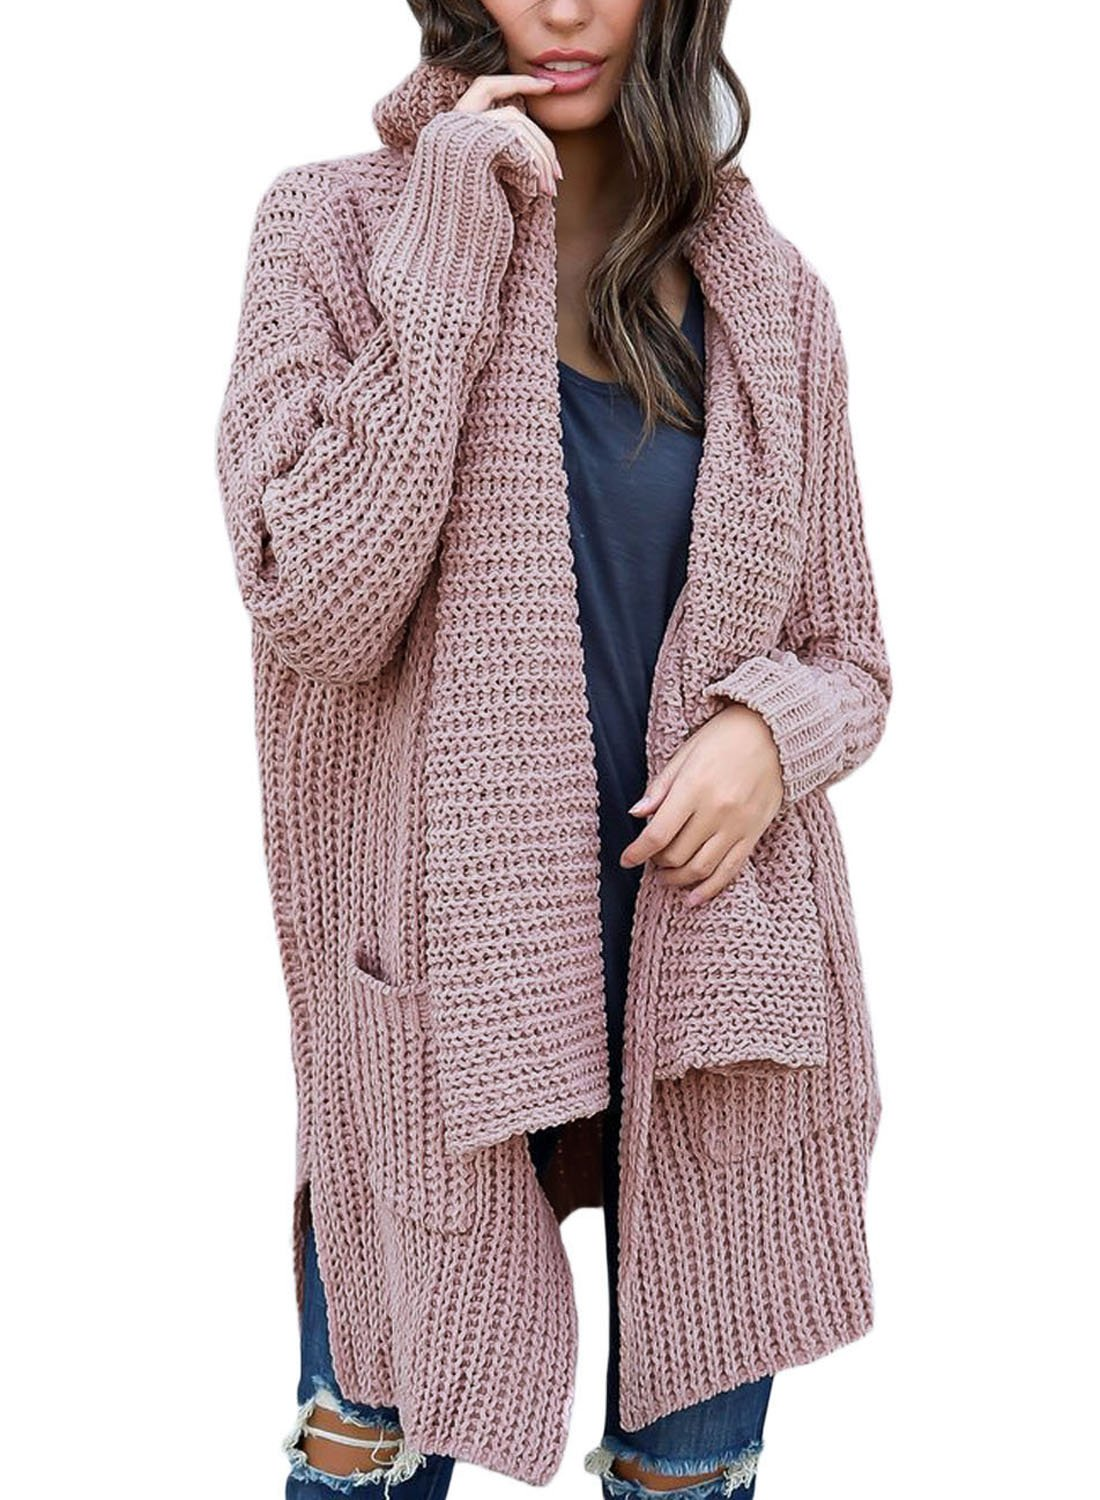 BLENCOT Womens Pink Ladies Sweaters Open Front Long Sleeve Casual Loose Chunky Knit Cardigans Outwears Pockets (US8-10) Medium